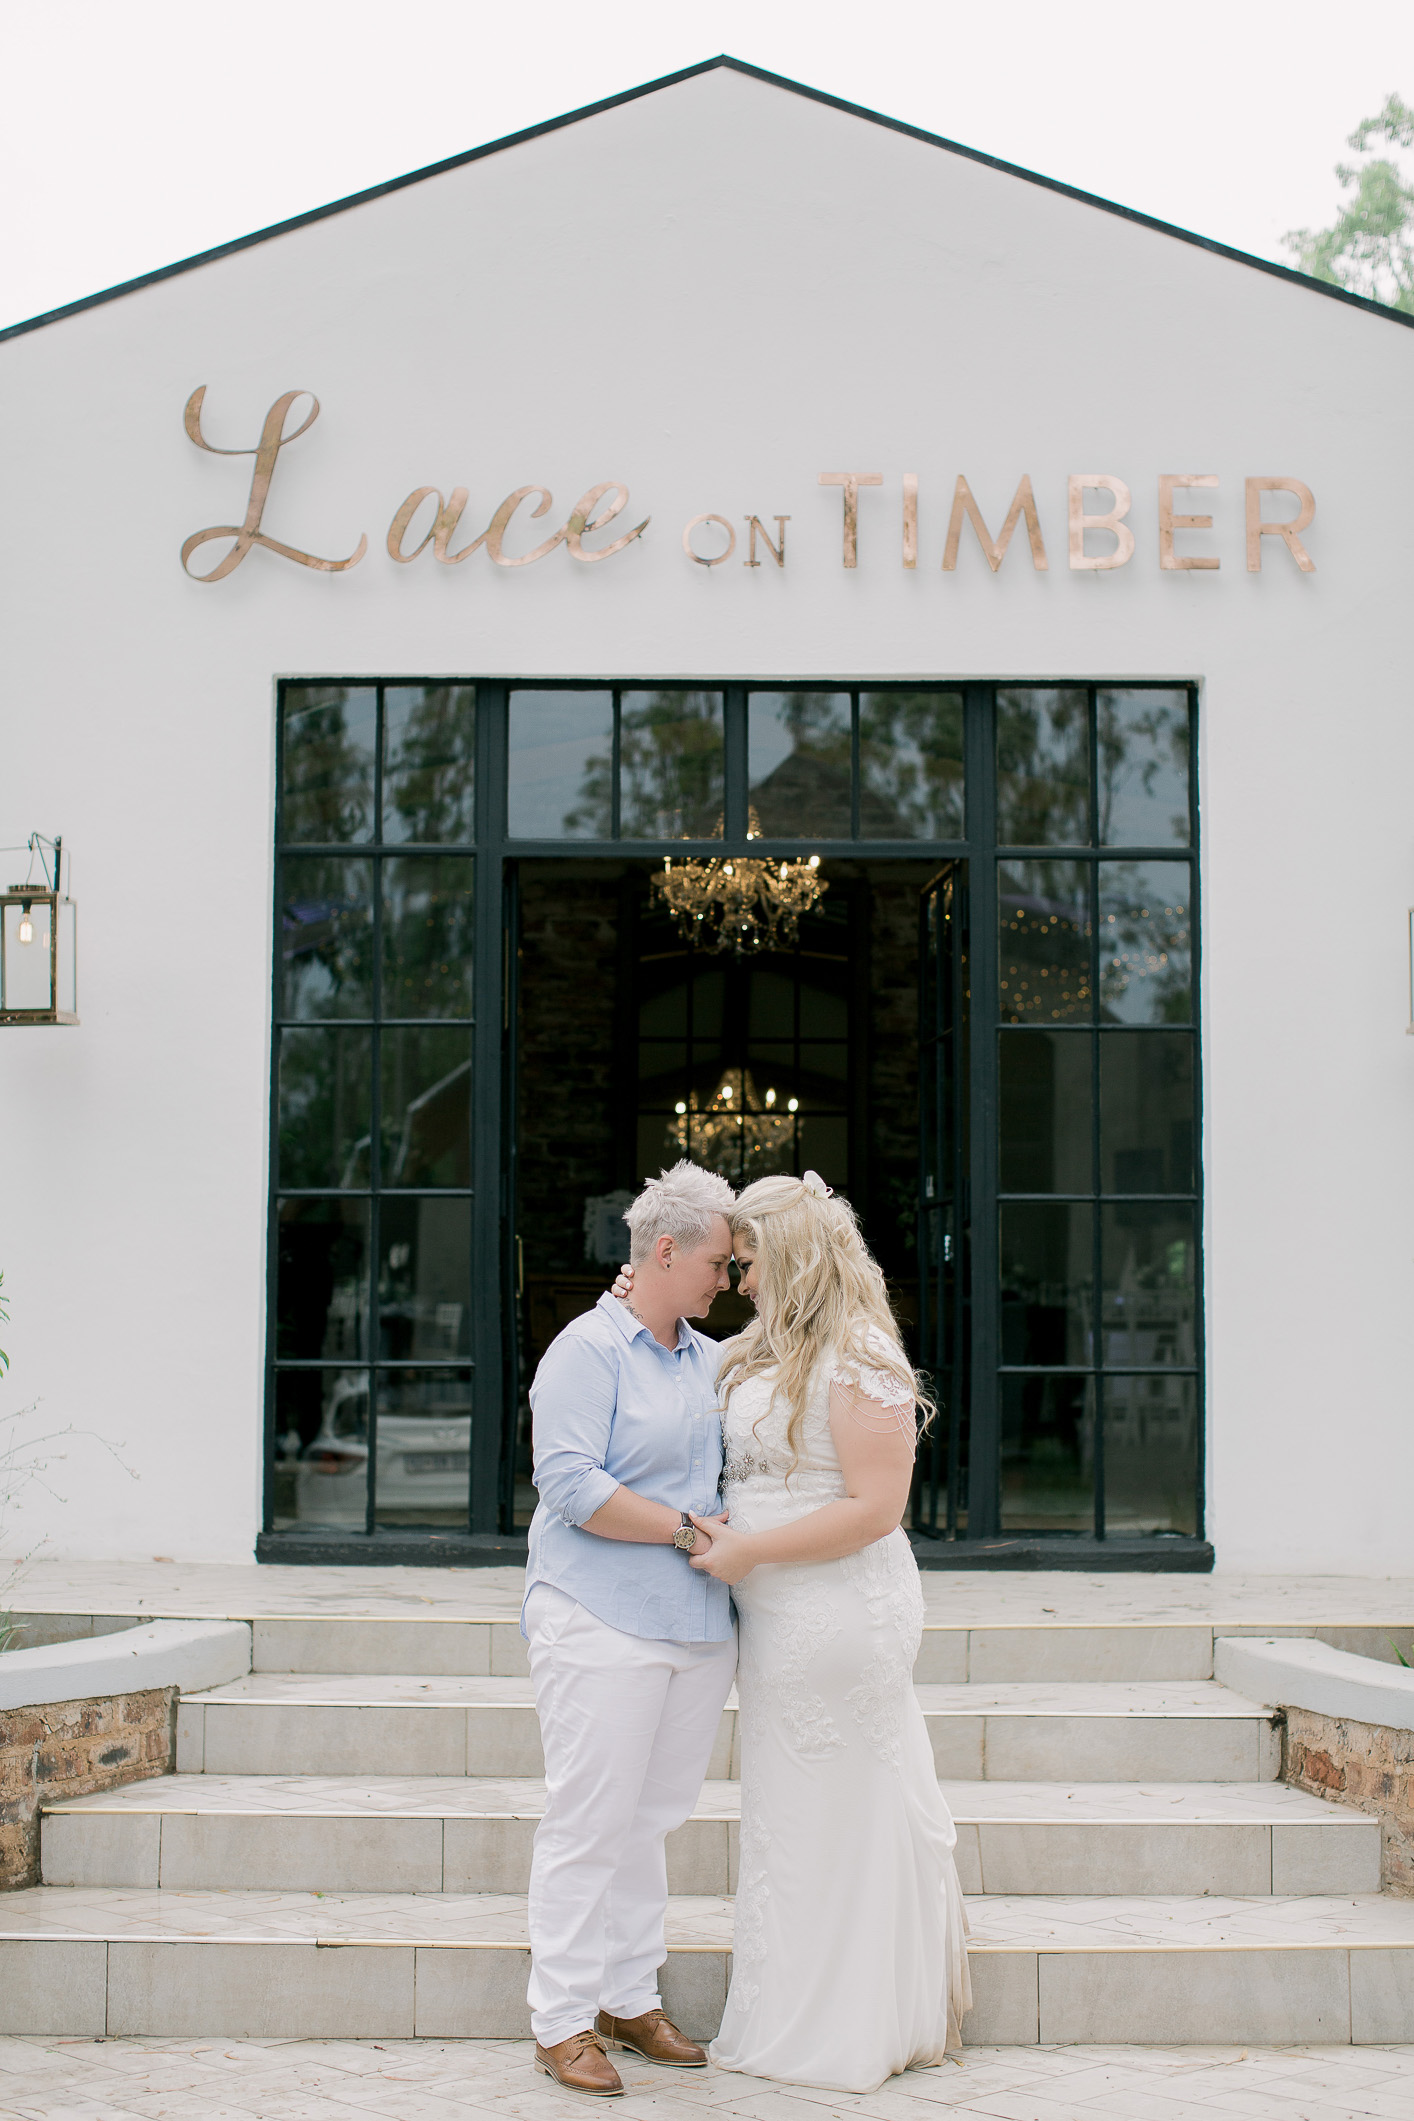 lace on timber wedding 2018 clareece smit photography019.jpg